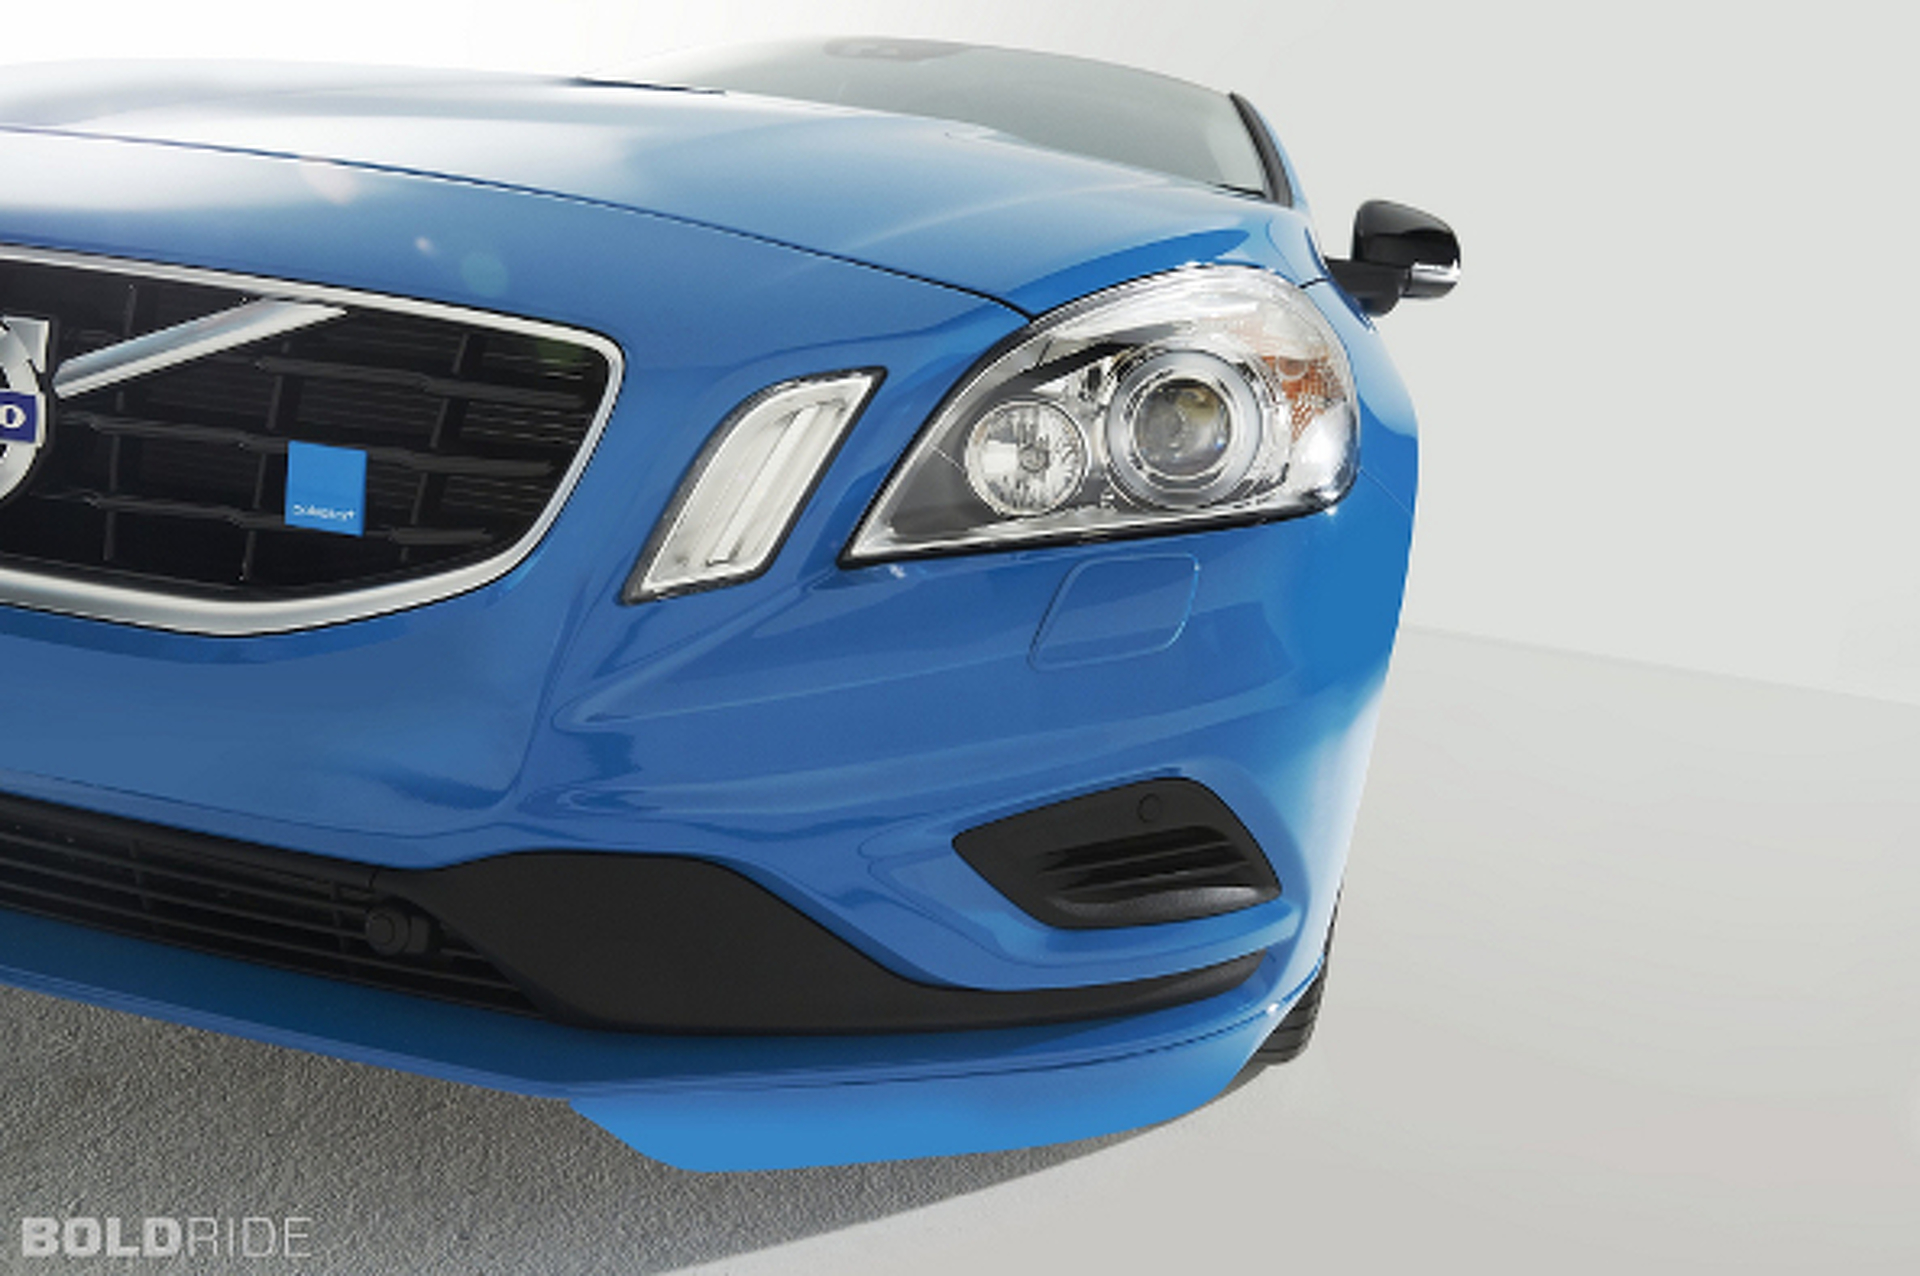 2013 Volvo S60 Polestar: Almost, But Not Enough